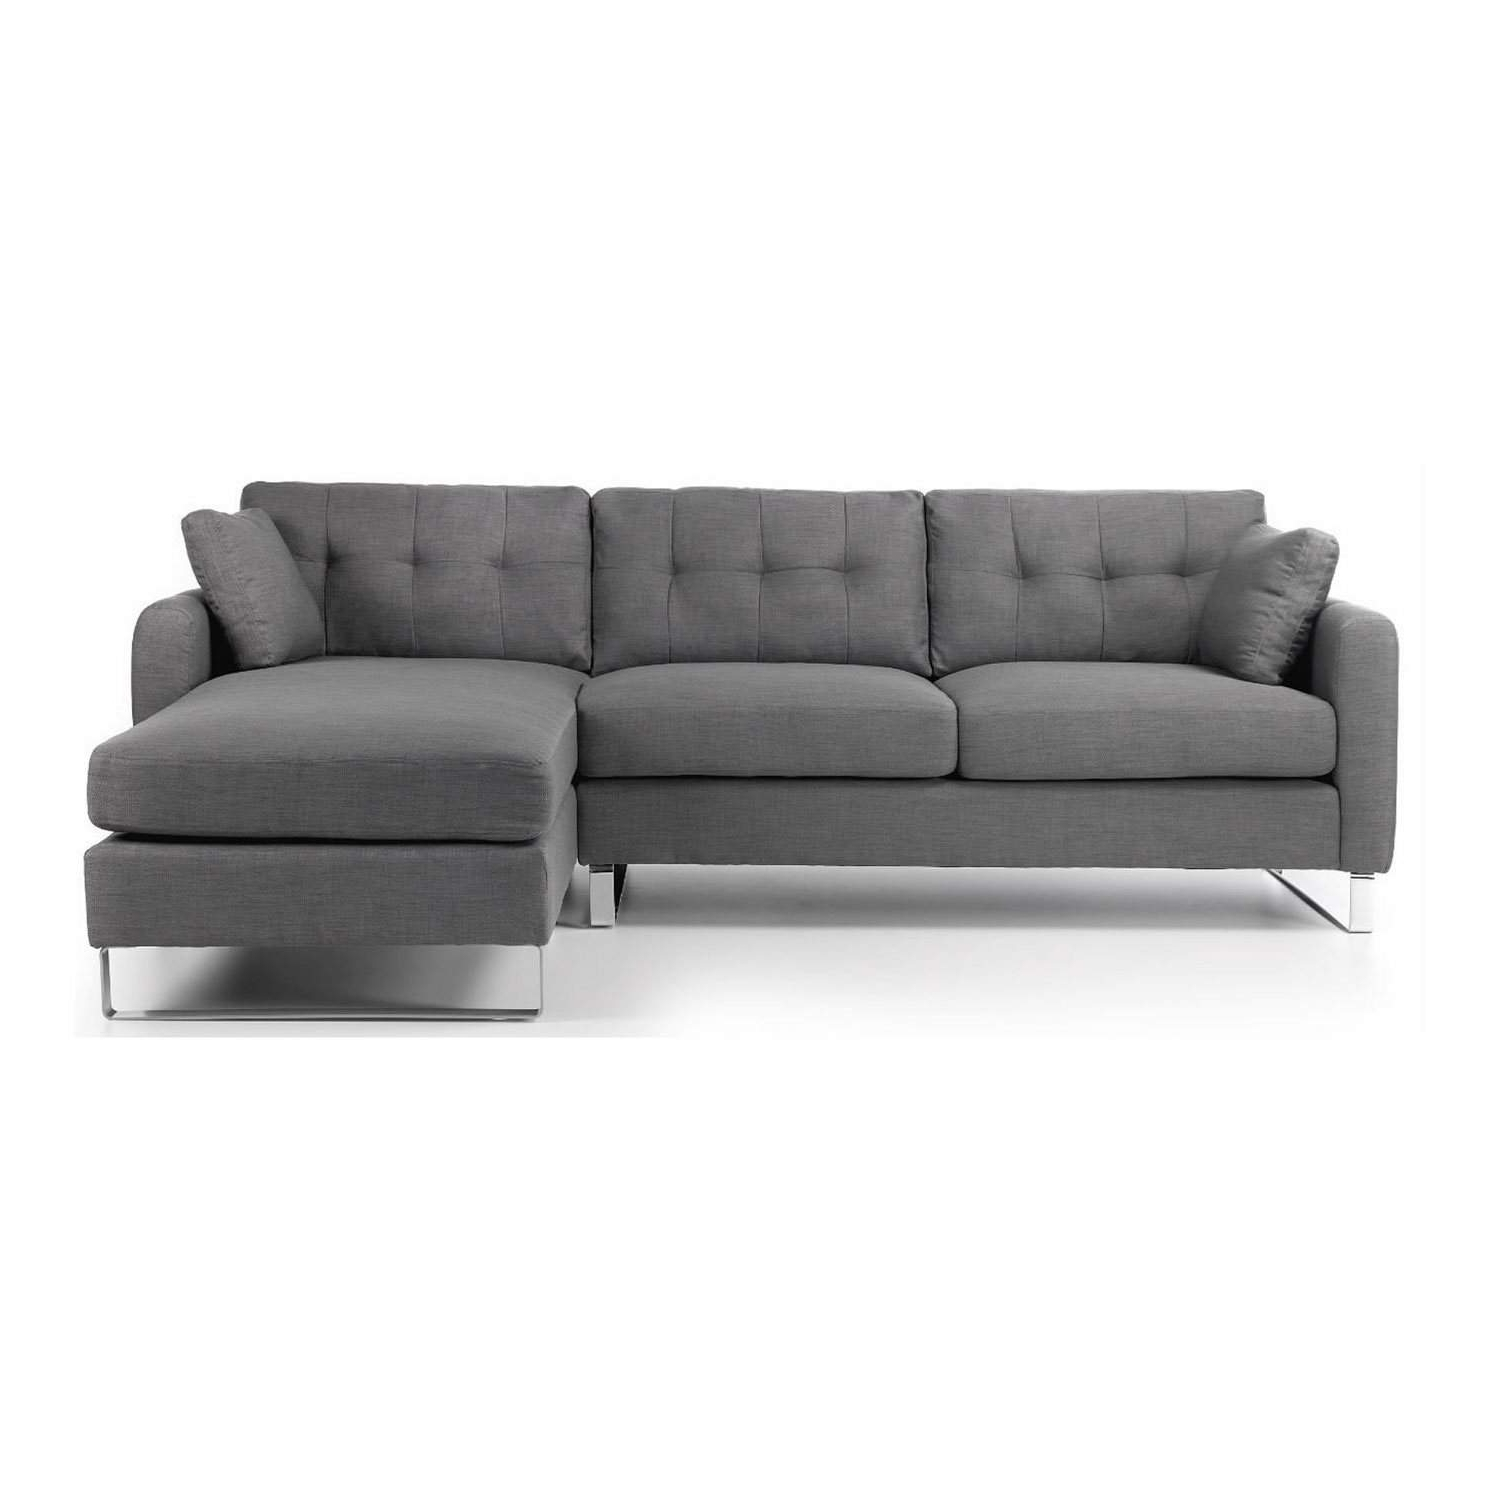 2018 Grey Chaise Sofas Intended For 37 Most Superb Grey Chaise Sofa Or Ekornes Stressless Plus Rustic (View 3 of 15)